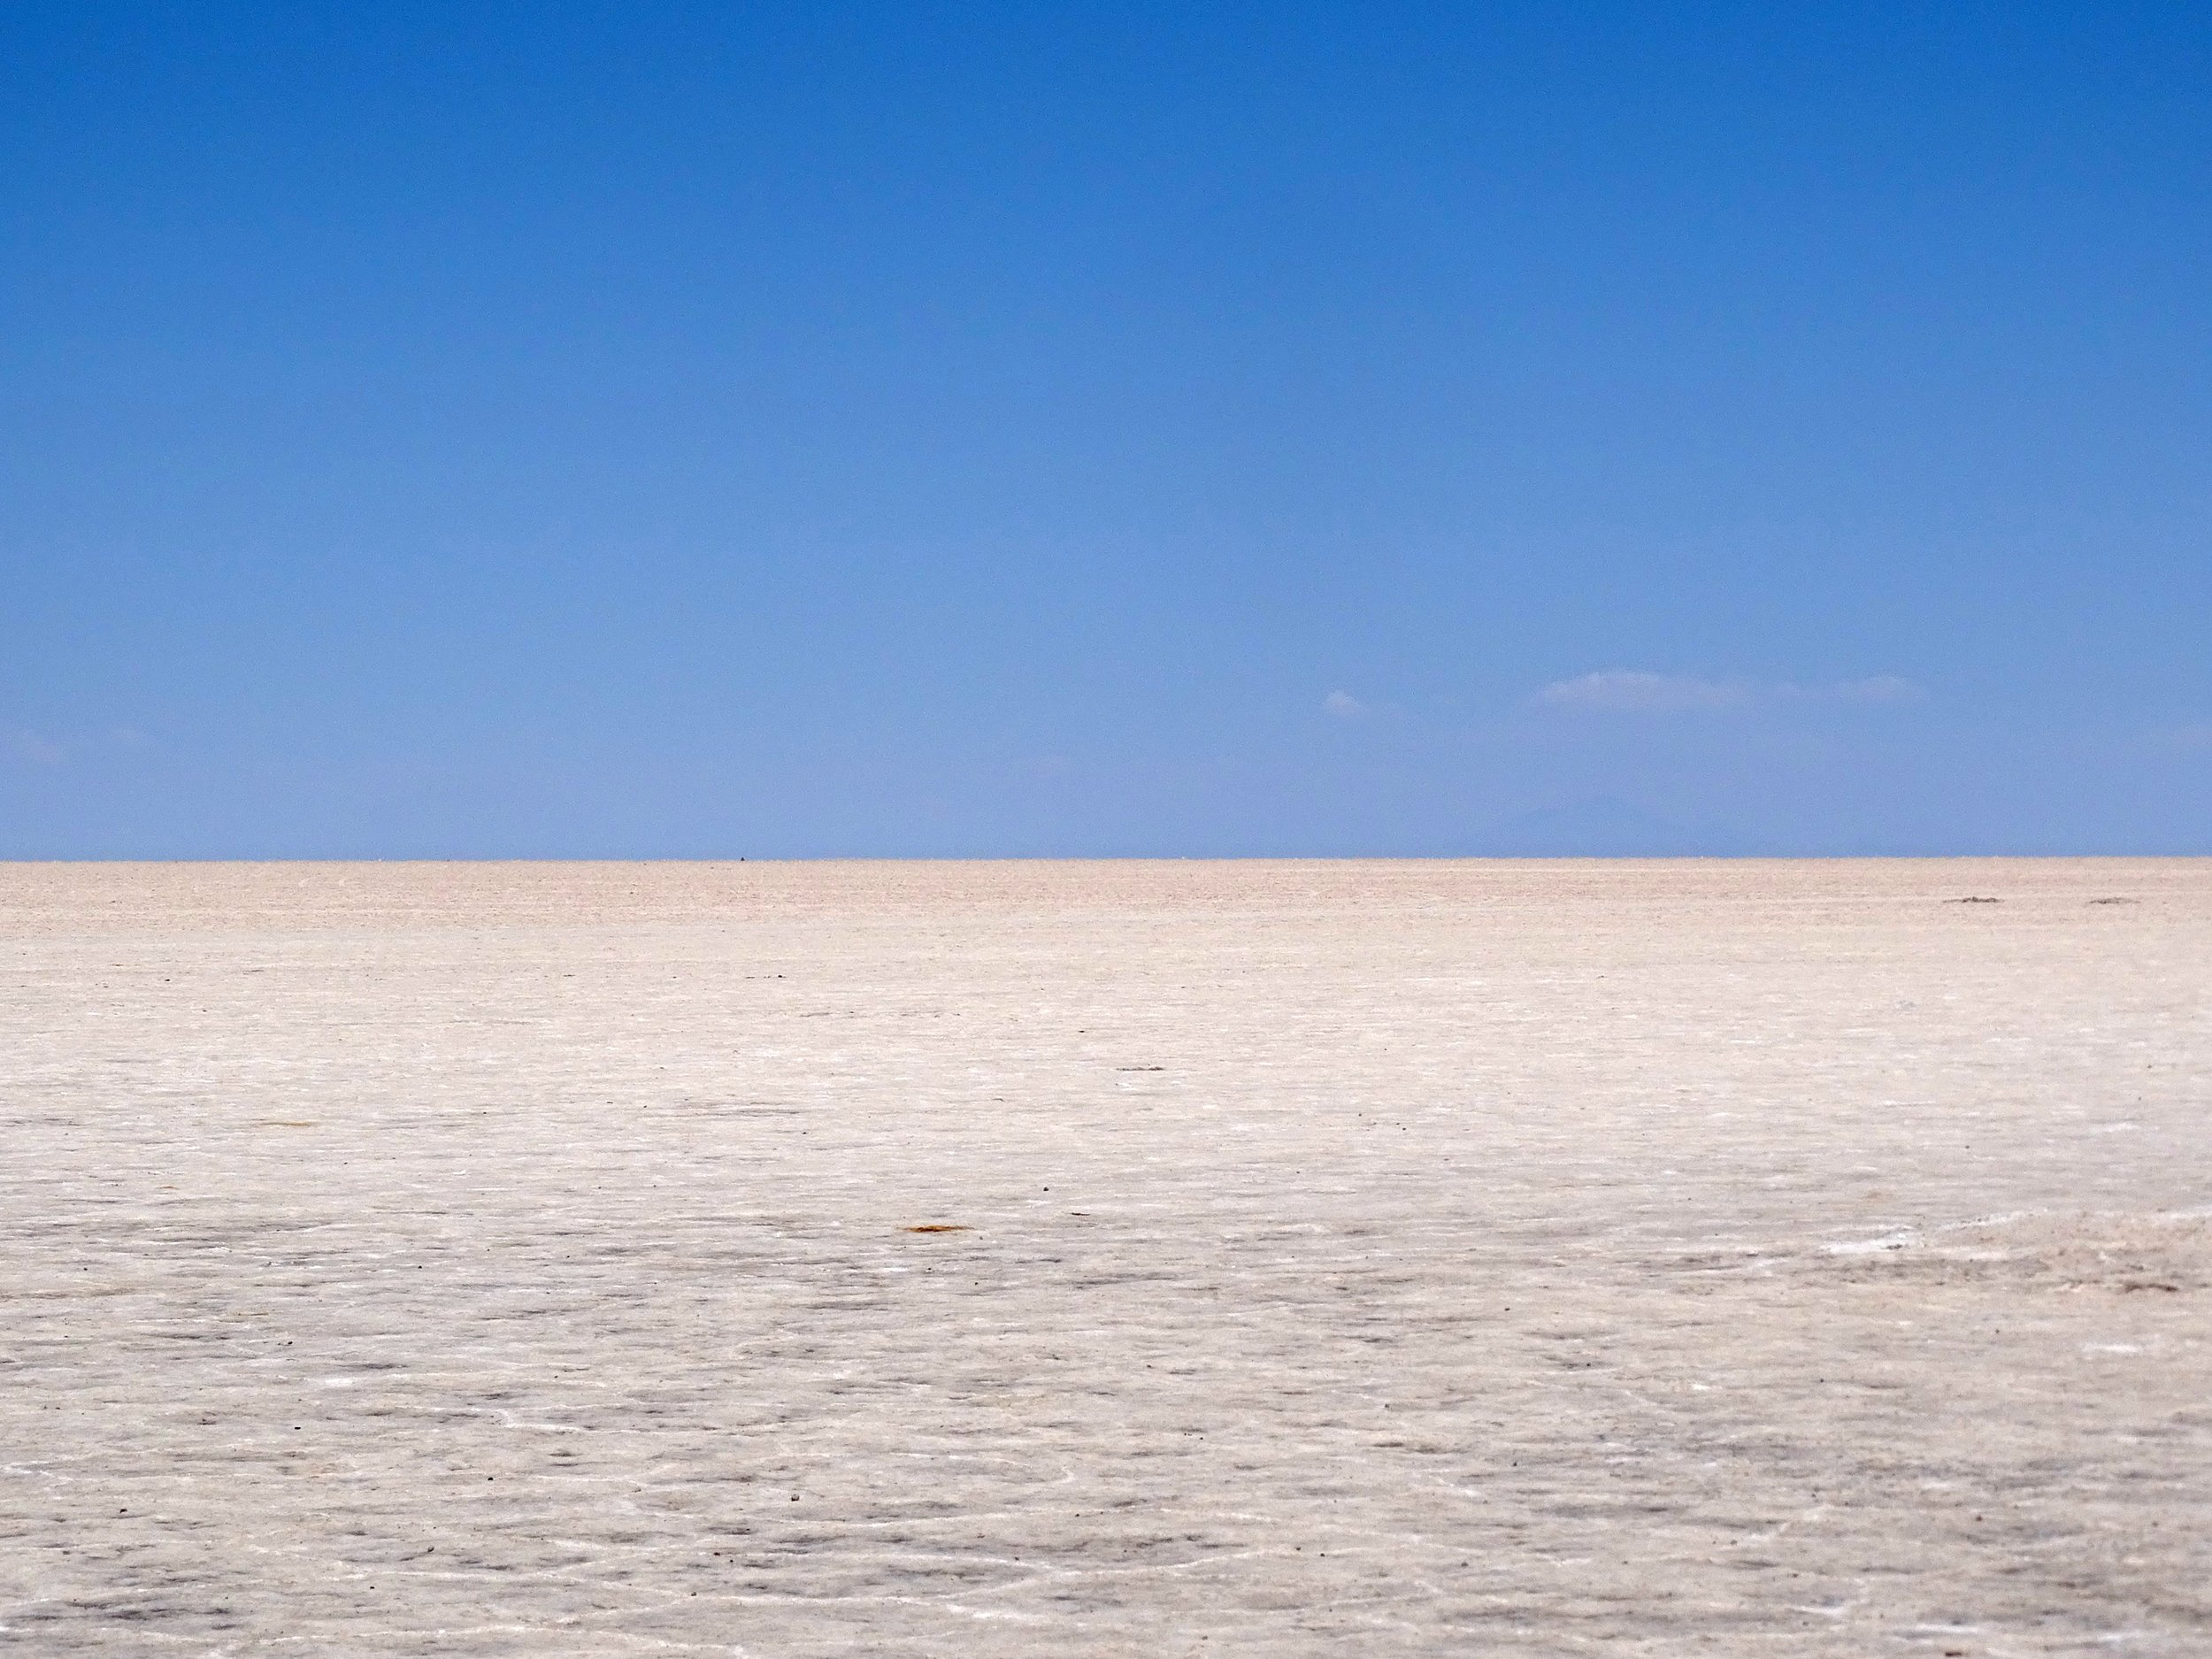 The vast simplicity of the Salar de Uyuni in Bolivia is one of my favorite spots.